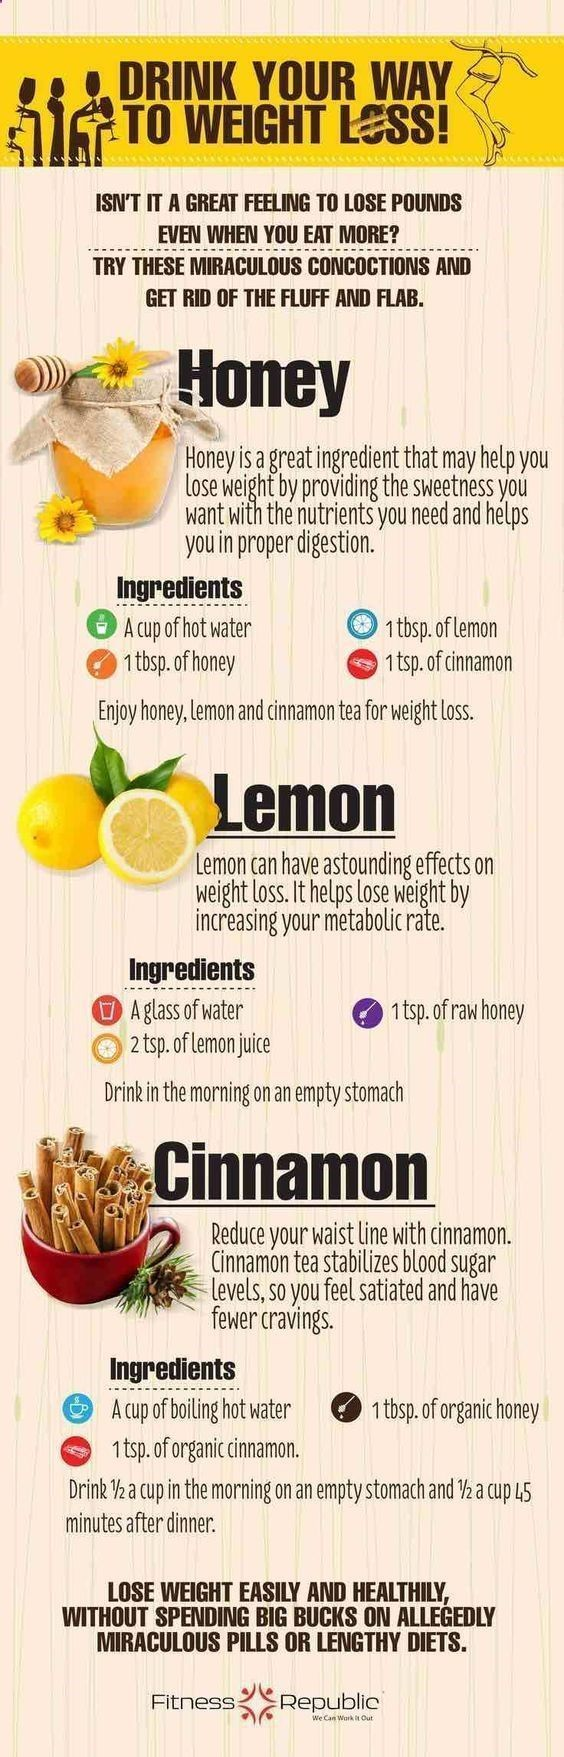 Fat Burning Meals Plan-Tips Look for juicing recipes to detox your body? Try these fresh and simple juice and smoothie recipes made from whole fruits and vegetables! 1. 10 Benefits of adding juices to your diet; Via www.stylecraze.com 2. Start a healthier #FruitJuicesRecipesFresh